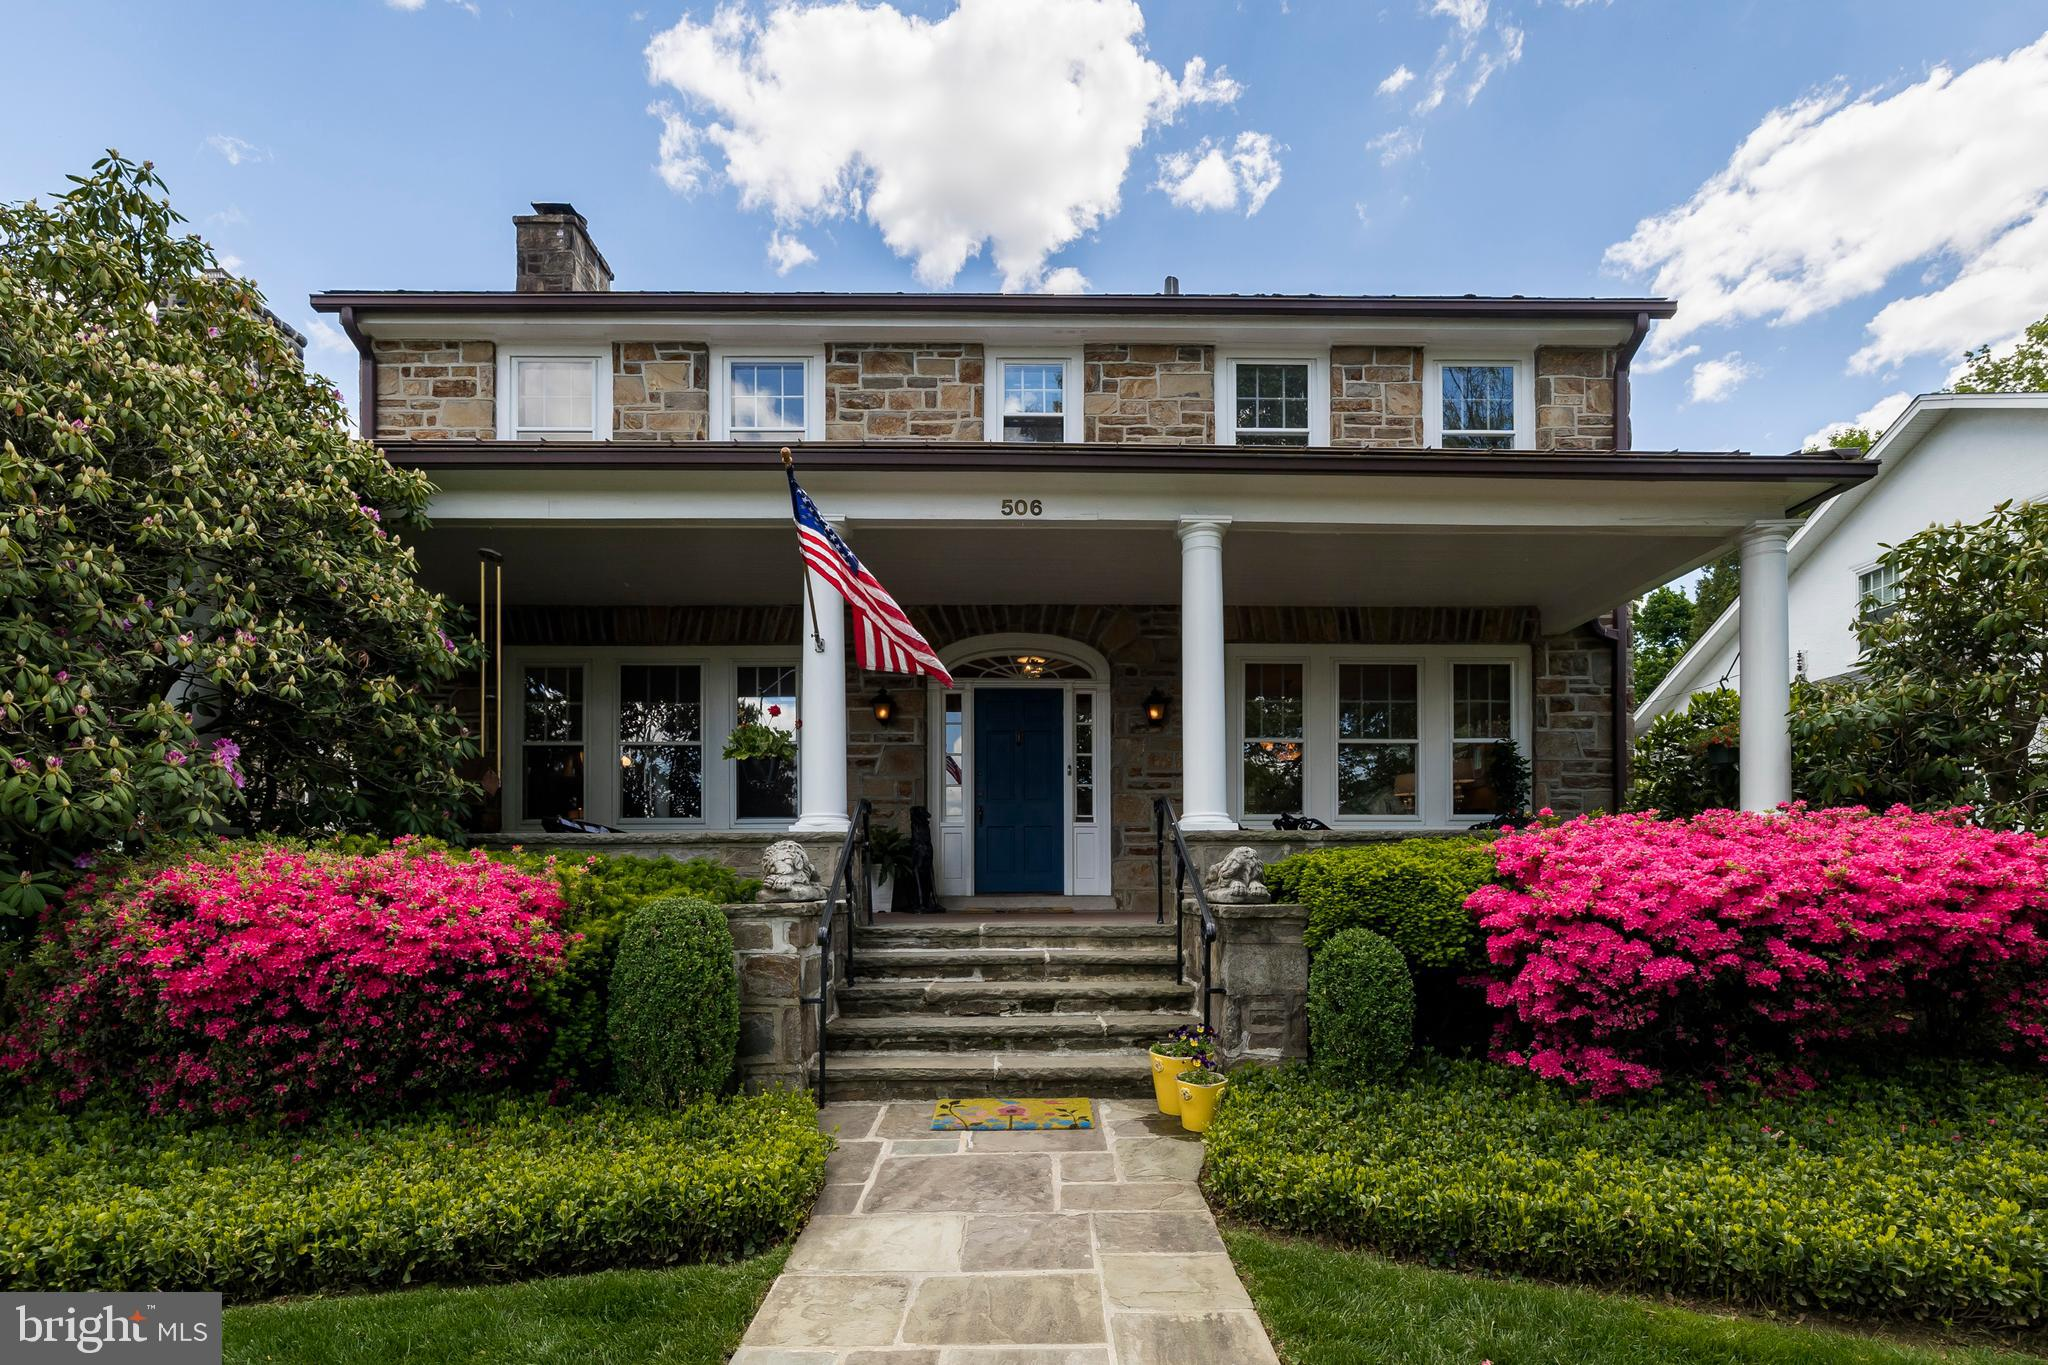 """CLASSIC Stone Single c1935 on Beautiful Price Street in West Chester Boro!  3060Sqft  3Bedrooms  2.1Baths  Walk-up Attic  1+CAR Garage & Extra Parking   AND  the MOST Enchanting Garden Landscape…  Manicured & Loved for 35+years by the current owners!  3Seasons of Blooms & a Koi Pond, too!  Summer Glorious Gardens just starting!  Plus, the Gracious Covered Front Porch!  Timeless Architecturals: In-Laid Hardwoods throughout, Stone Fireplace, 9ft Ceilings, Deep Window Sills, Extensive Original Millwork, Tin Roofs,  """"LARGE Rooms"""" is an understatement, come discover more…  Main Level: Grand Foyer, Great Room  16X24  Stone Fireplace, Office/Den, Powder Room, Dining Room,  '60's Kitchen,  Entry to the Awesome LUSH Backyard & Terrace, Beautiful Custom Fencing.  Laundry Room.  Upper Level: Primary Bedroom: 14X25   RETRO Lavendar & Black Tile EnSuite Bath, 2 generous sized Bedrooms, Hall Bath, Walk-in Cedar Closet.  3rd flr Walk-up Attic:  LARGE Unfinished Space, 4thBedroom or add your personal touch!   Lower Level:  1490Sqft Storage.  yes, some Vintage Features, BUT,  Still does not dim this Spacious Beauty's Style & GOOD Bones!  A short stroll to Parks, Uptown & Restaurants.  This front porch is just waiting for your wicker furniture & a mint julep!   ...  ***See the Virtual tour for Flr Plans, 3D, Video ++"""